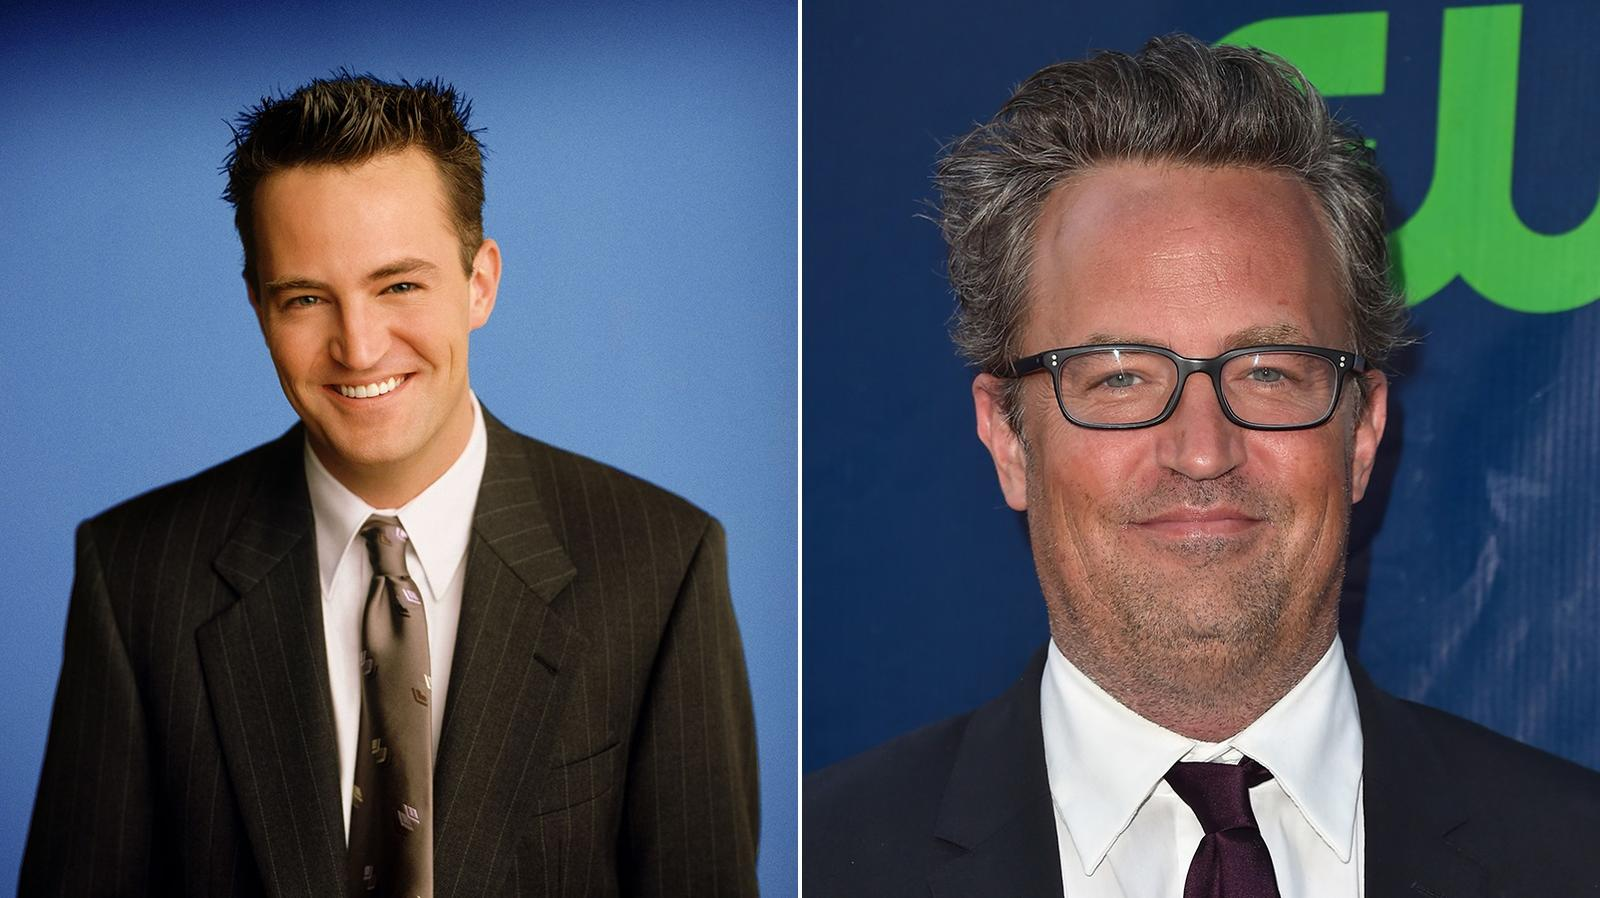 Matthew Perry (Bright/Kauffman/Crane Productions / Getty Images)